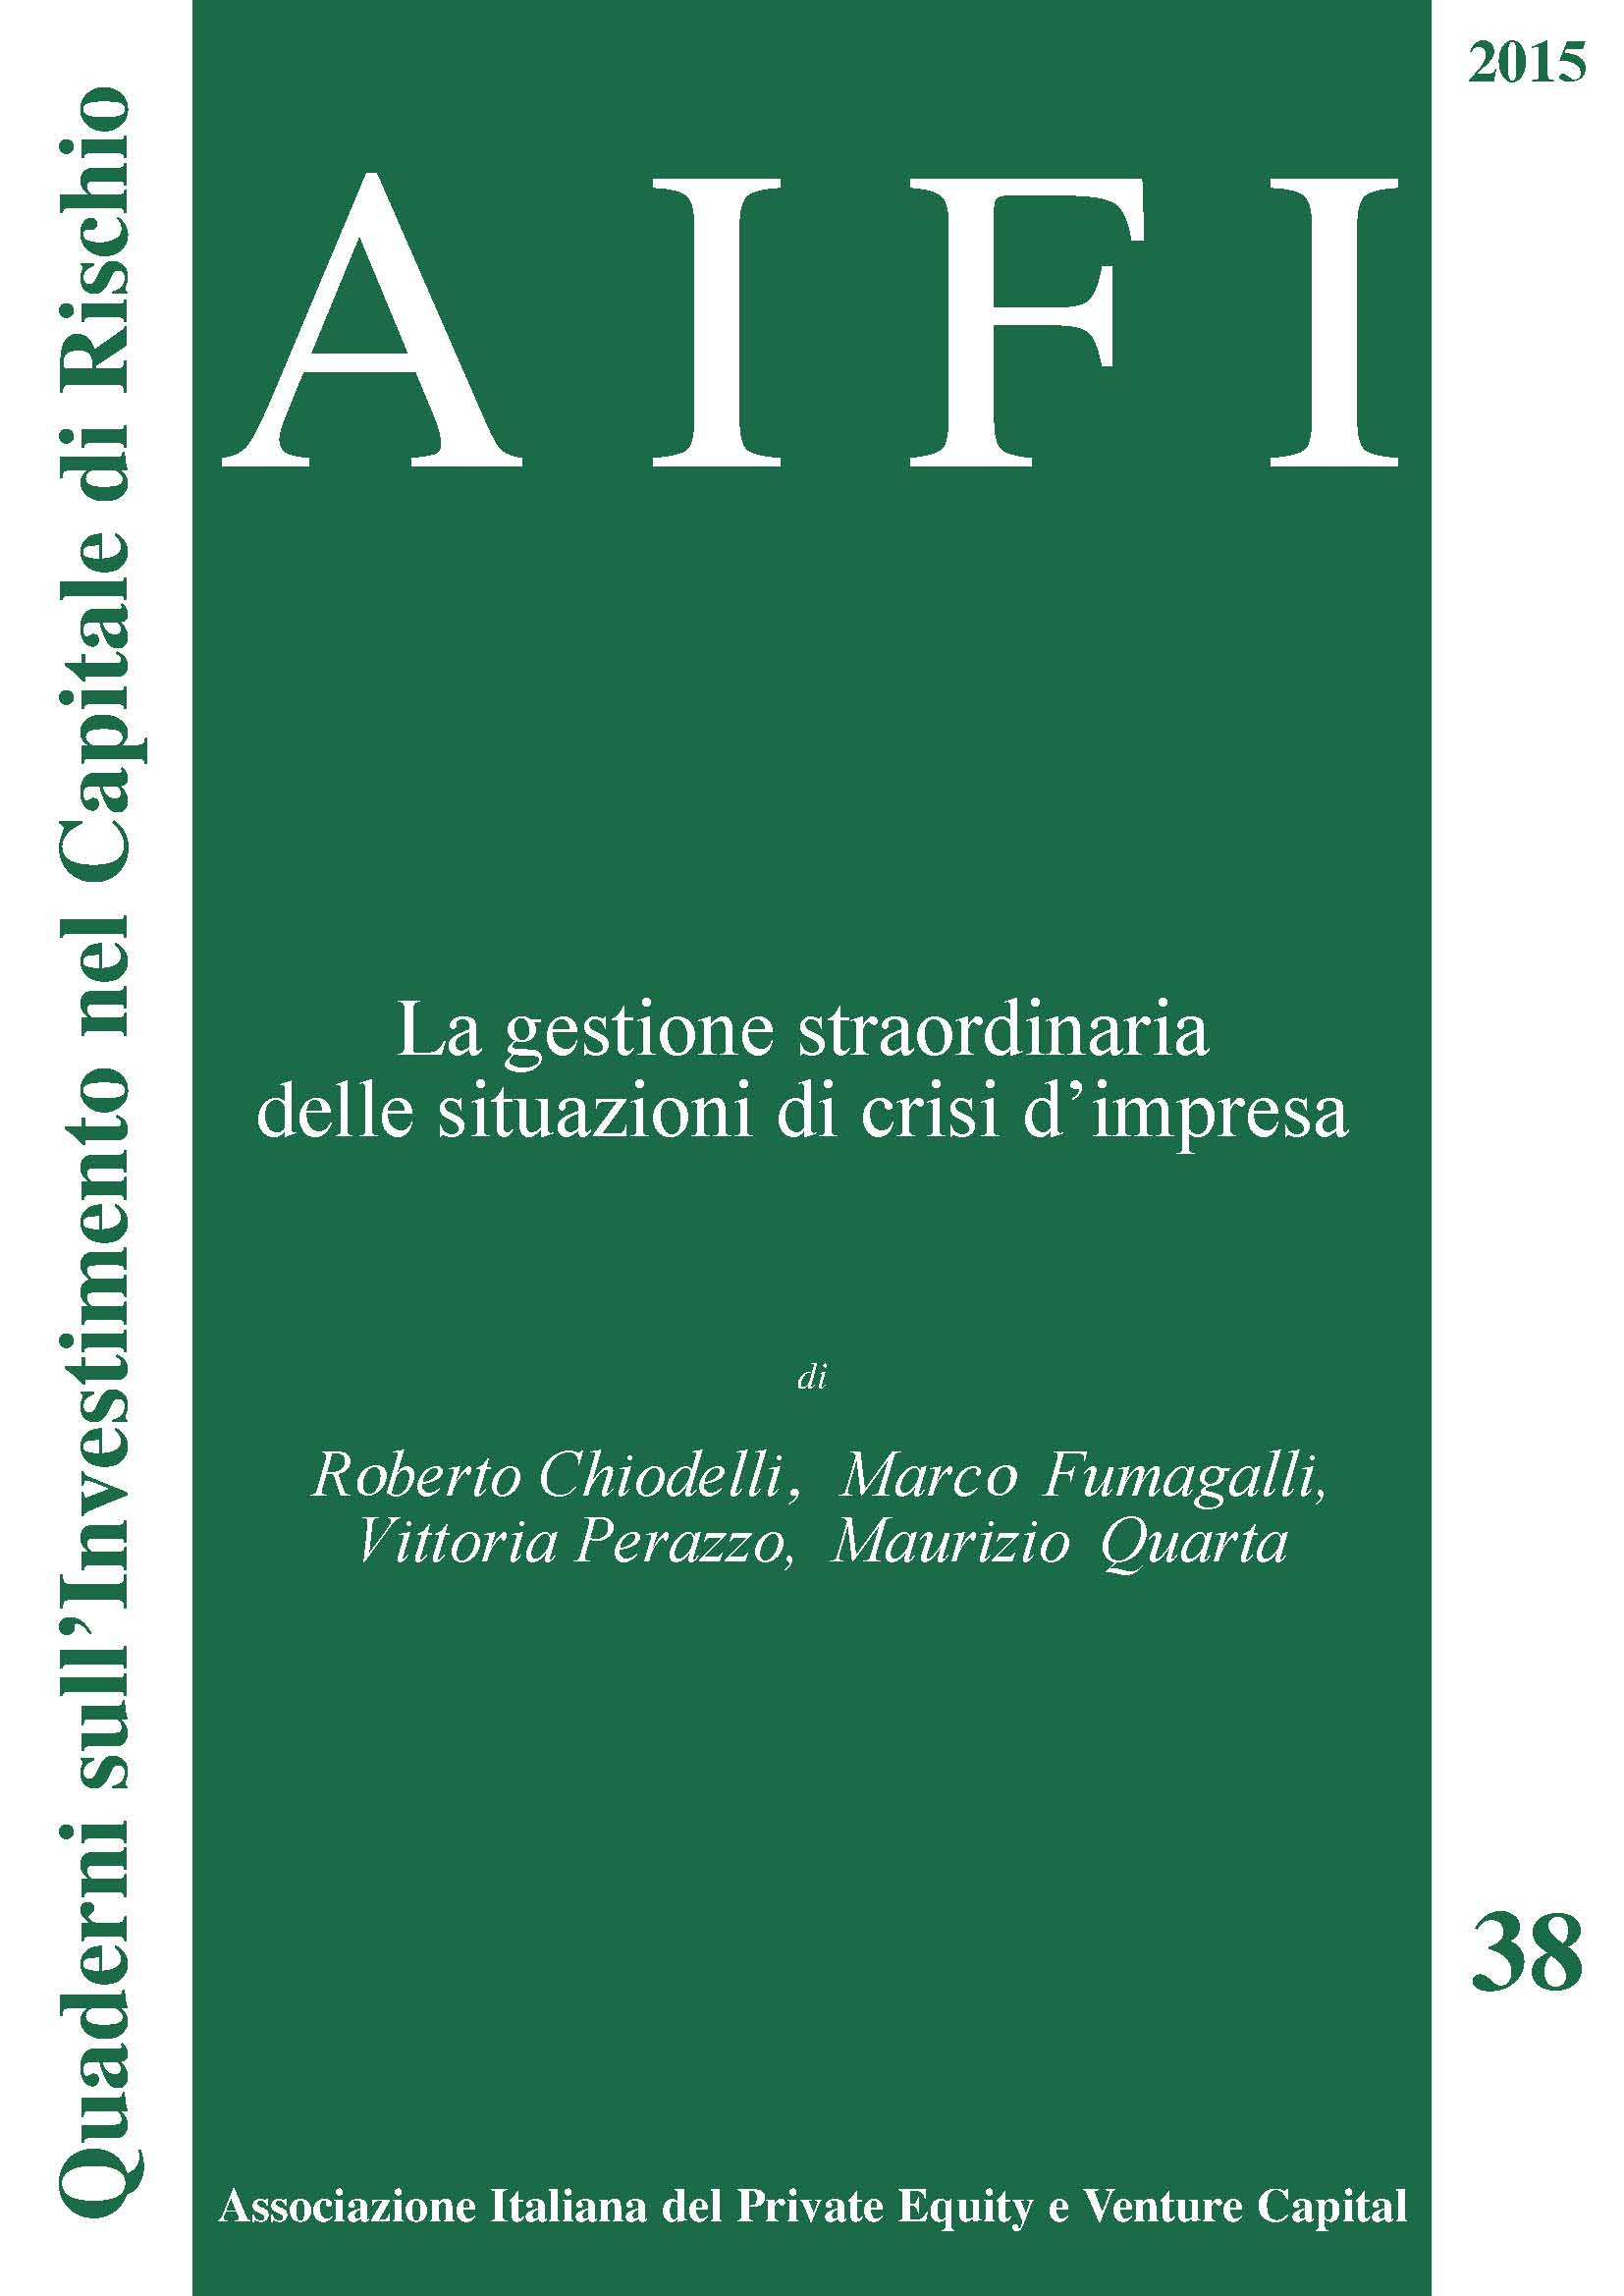 AIFI_-_Special_Situation_-_libro_2015_cover.jpg